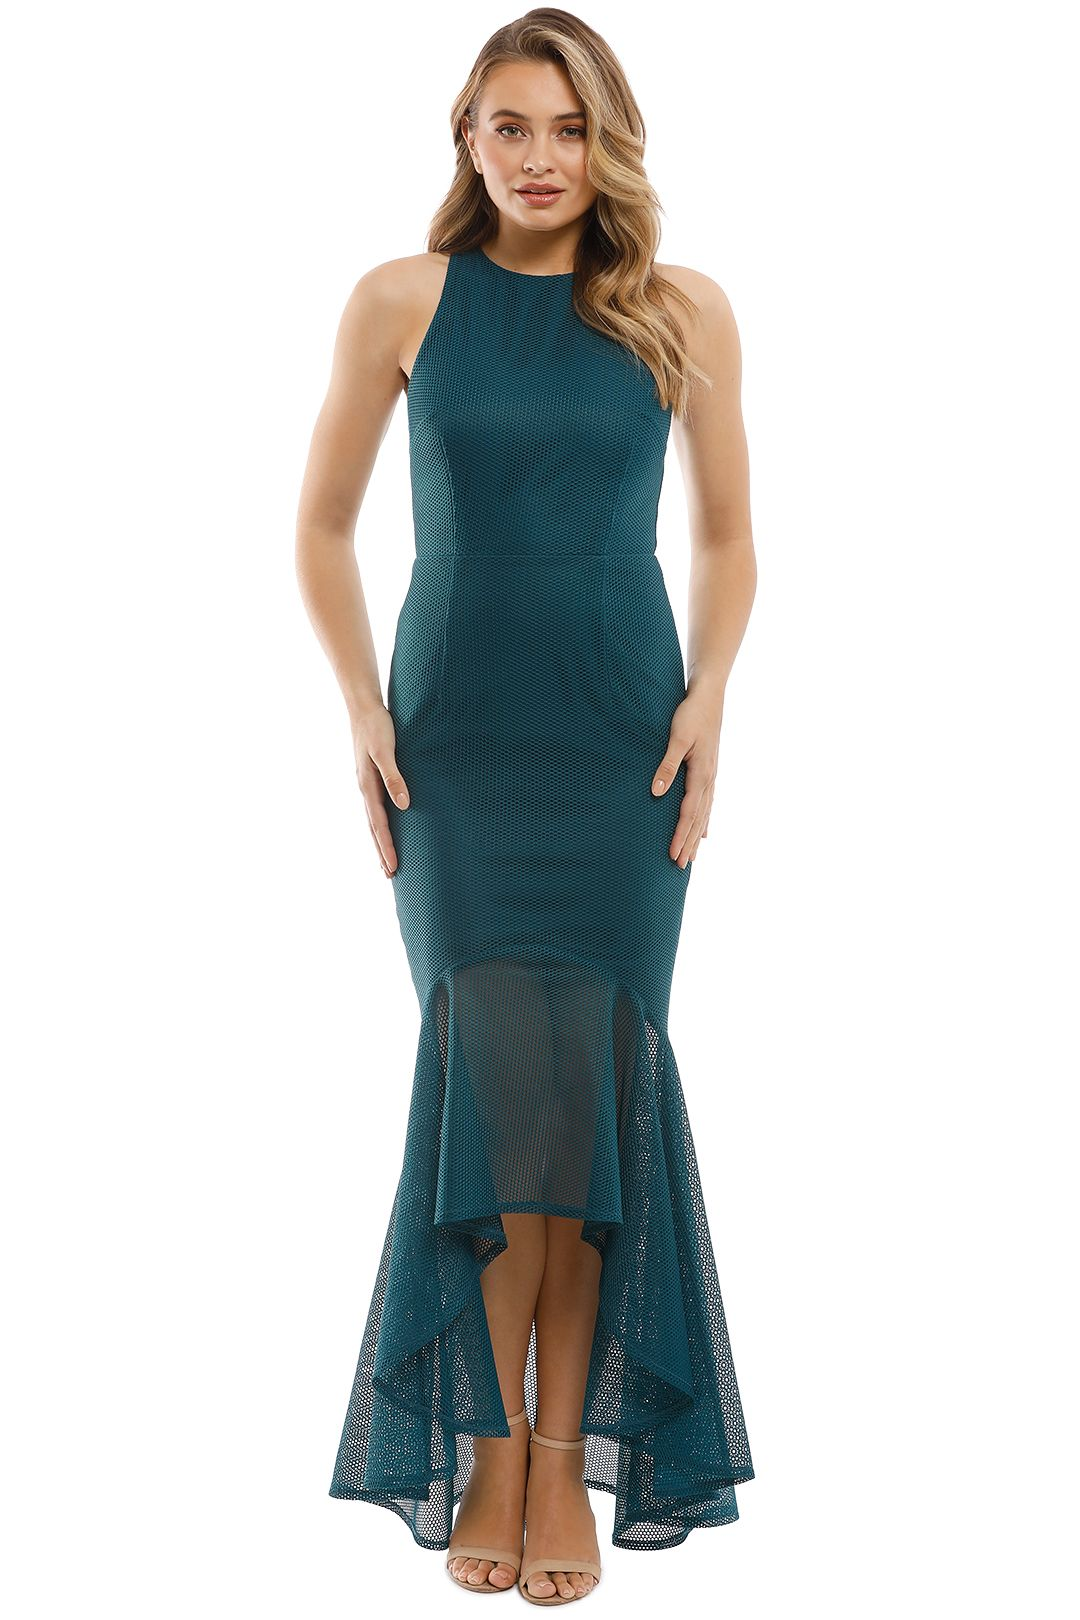 Grace & Hart - Stand Alone Gown - Teal - Front